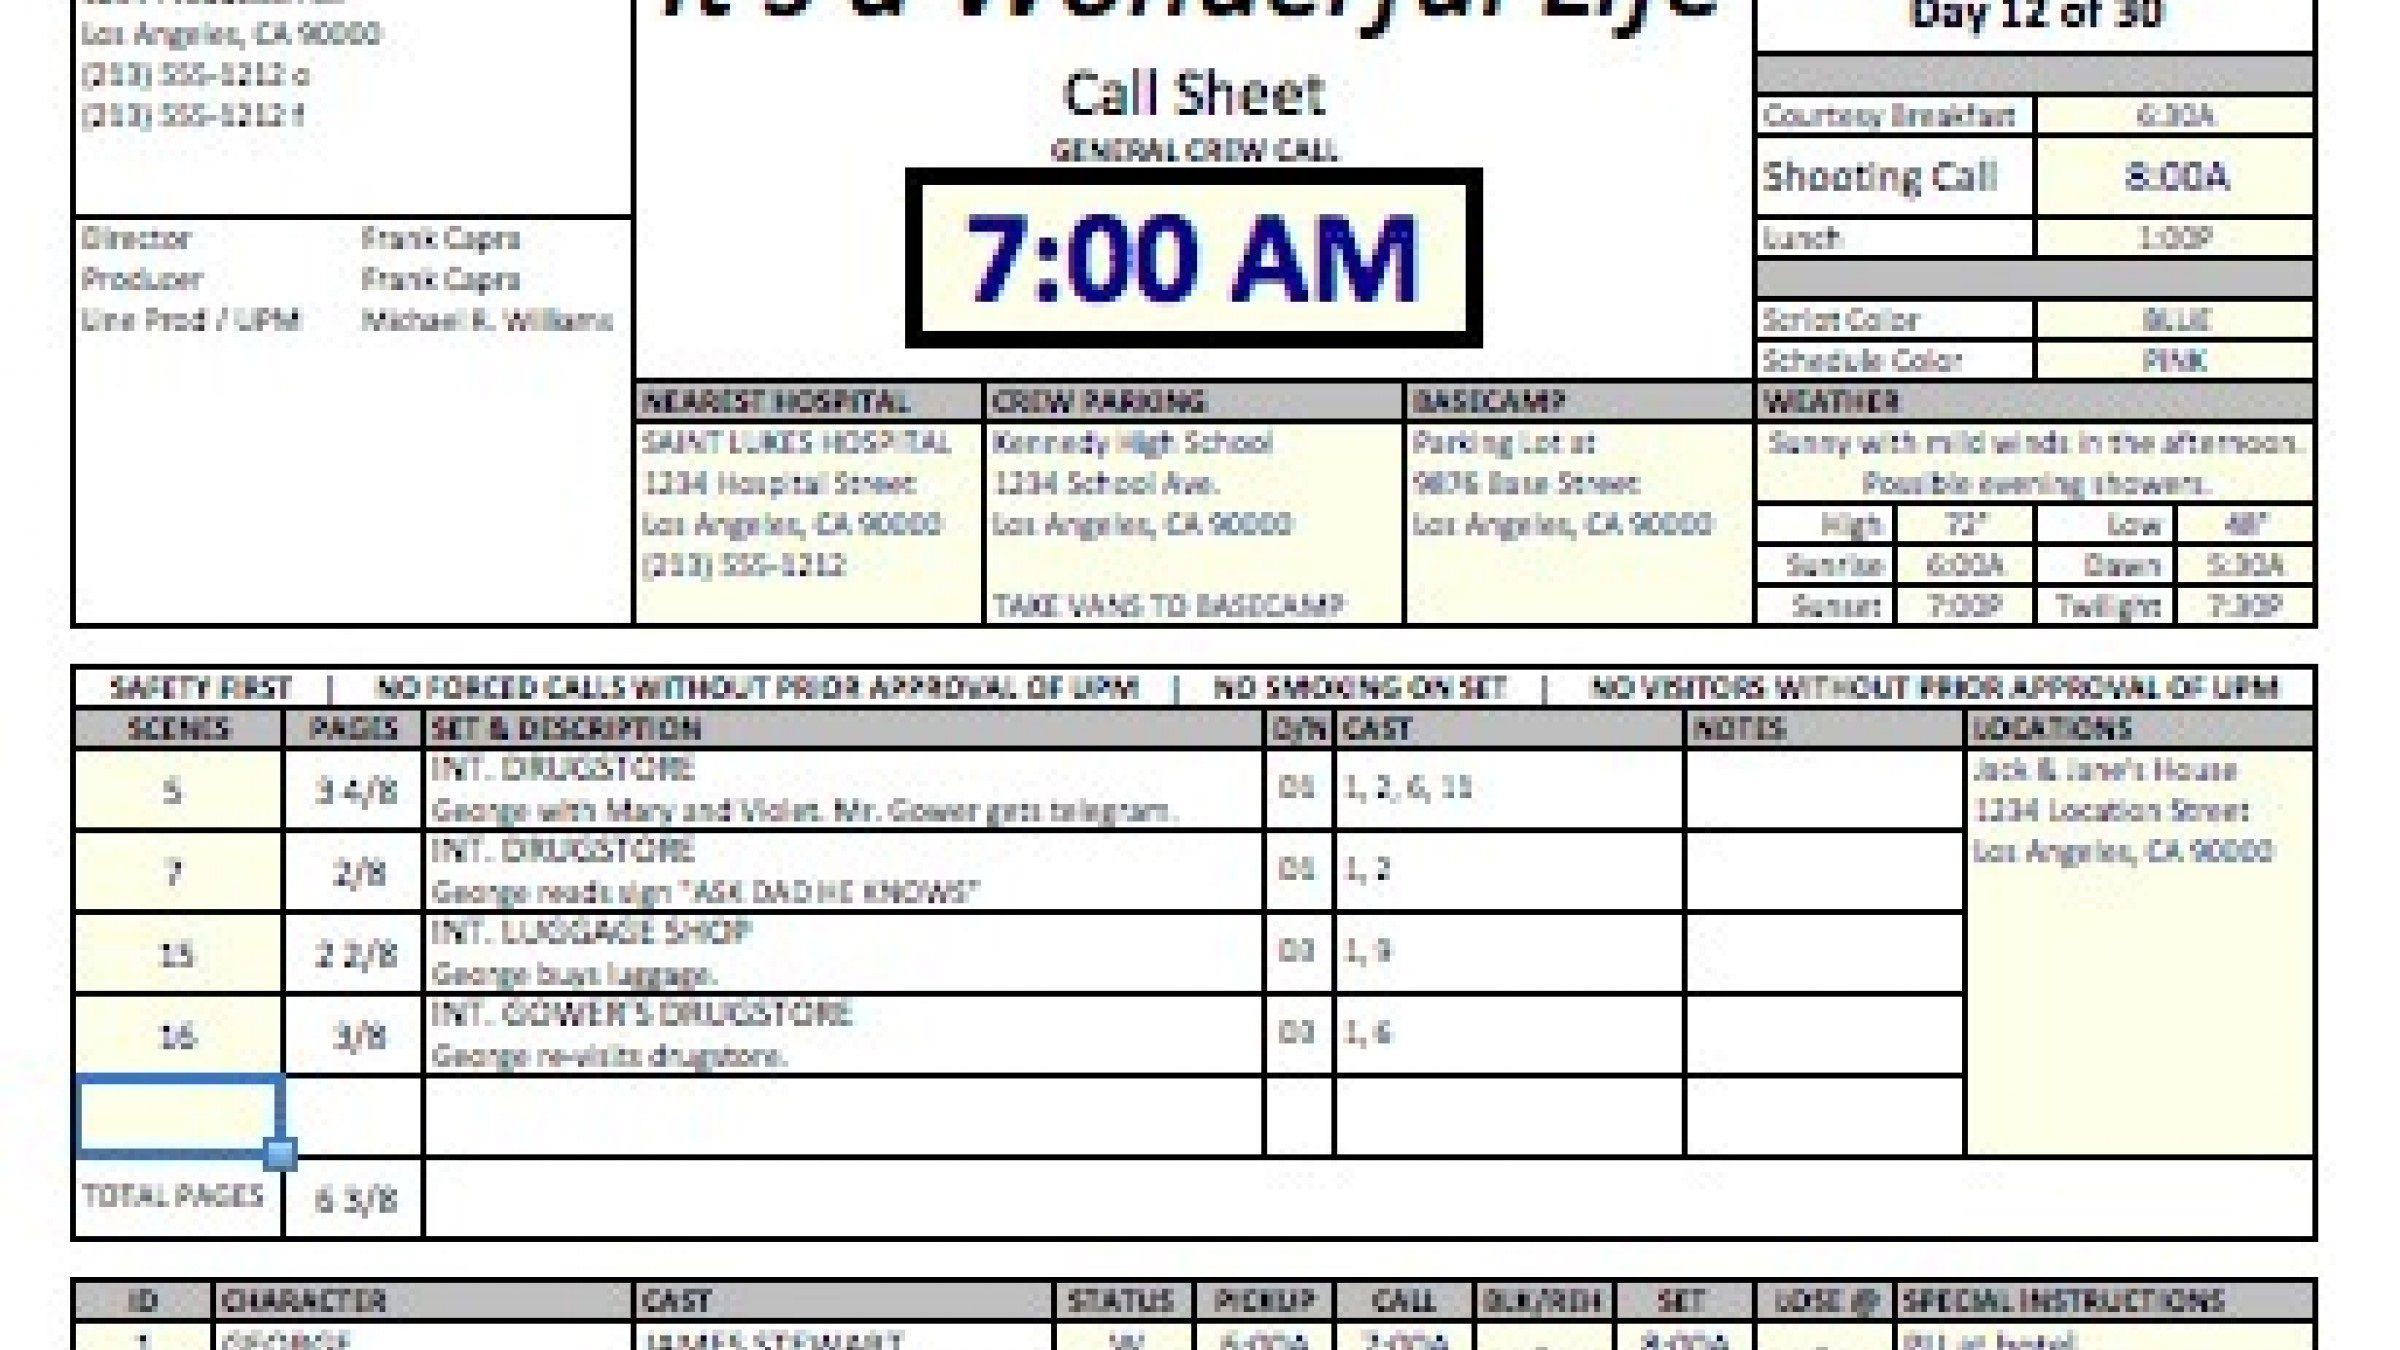 010 Staggering Film Call Sheet Format Concept  Production Template StudentFull